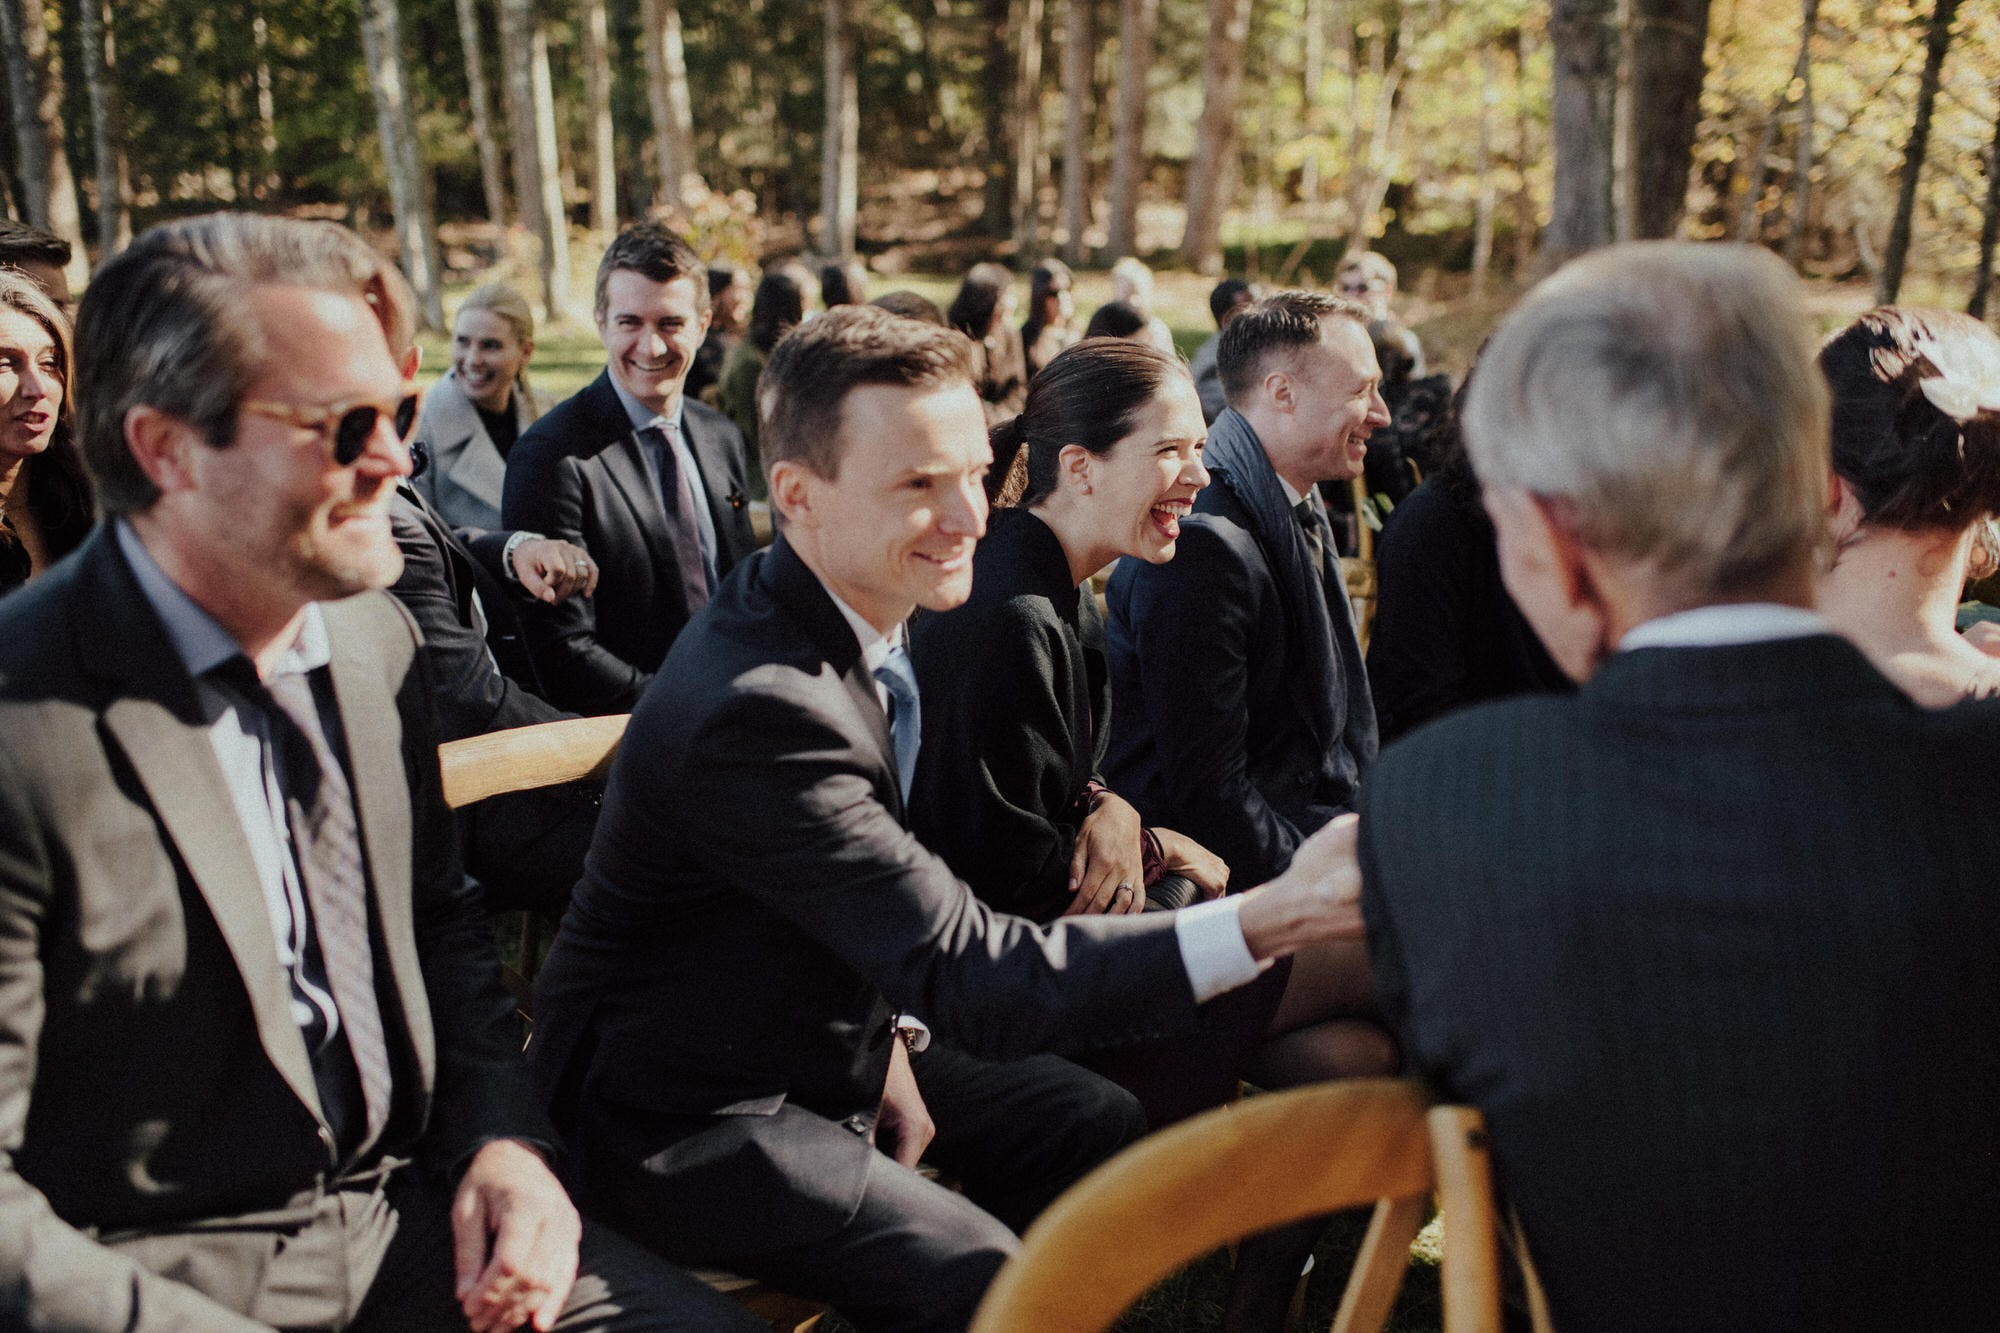 candid shots of guests at wedding in catskills